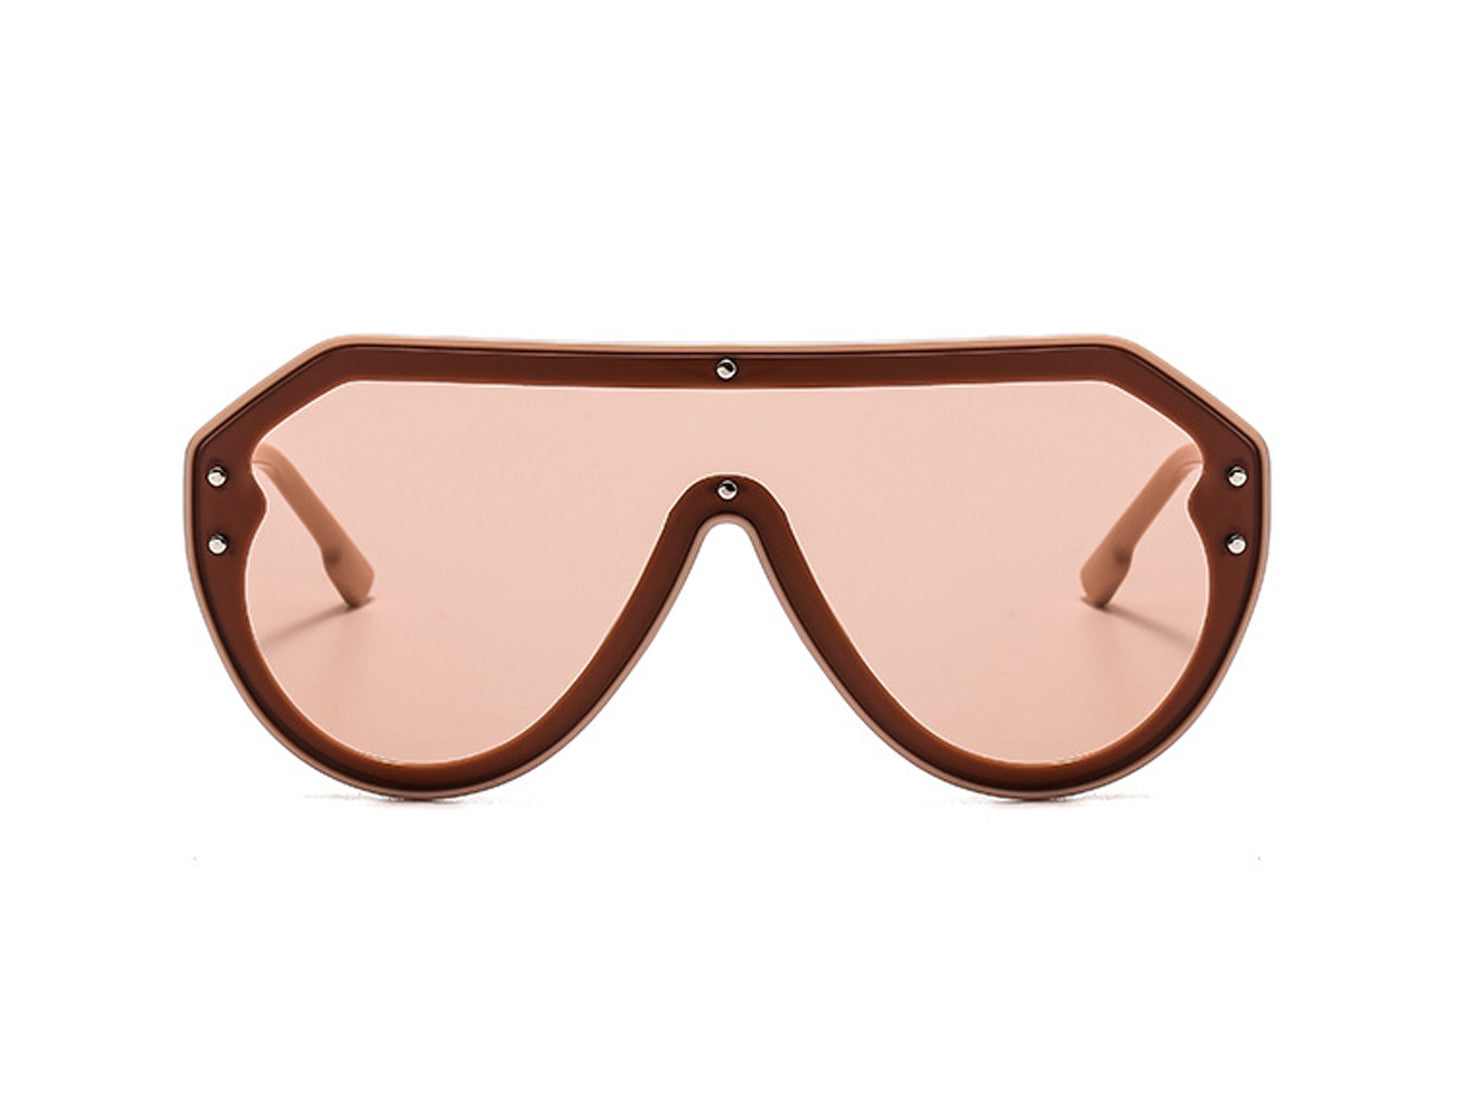 9082 - Oversize Retro Vintage Fashion Tinted Aviator Sunglasses